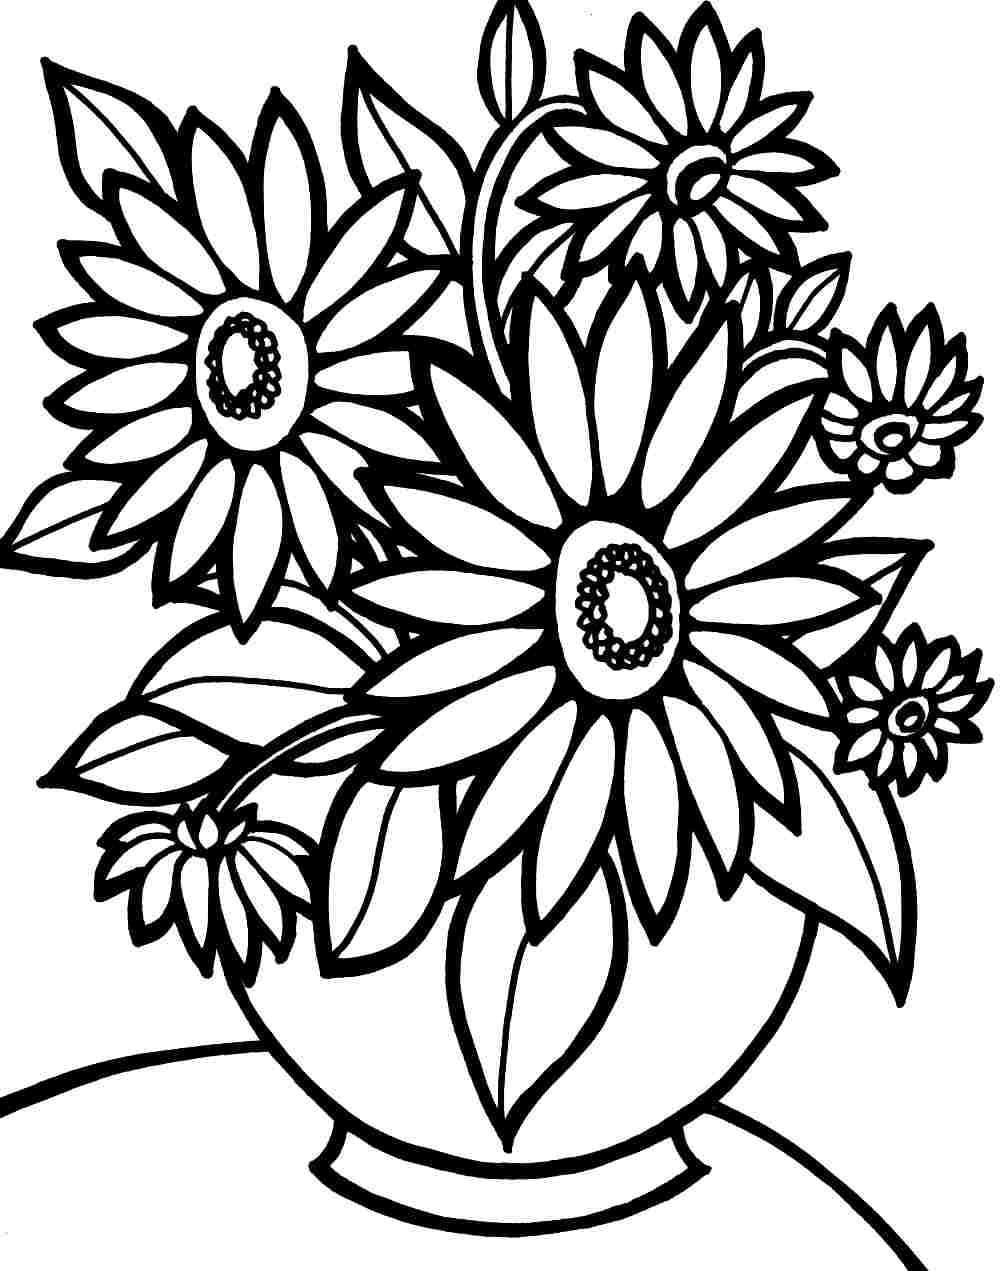 Flower Coloring Pages To Print Printable Flower Coloring Pages